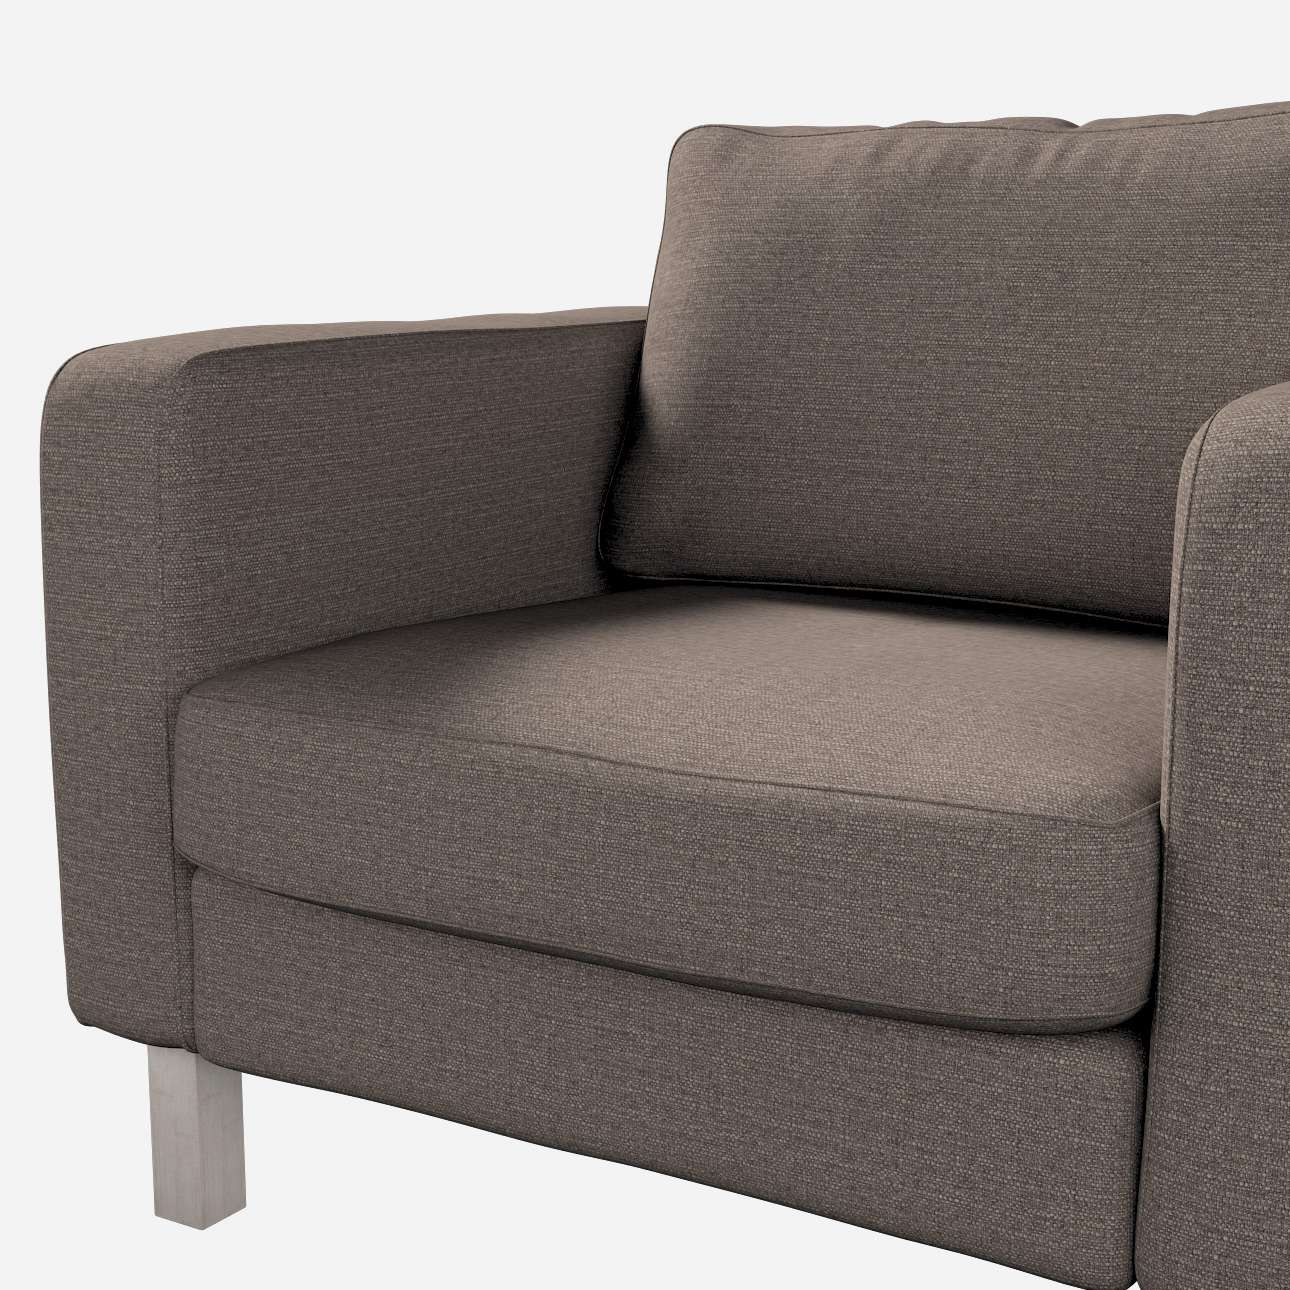 Karlstad armchair cover in collection Granada, fabric: 104-93